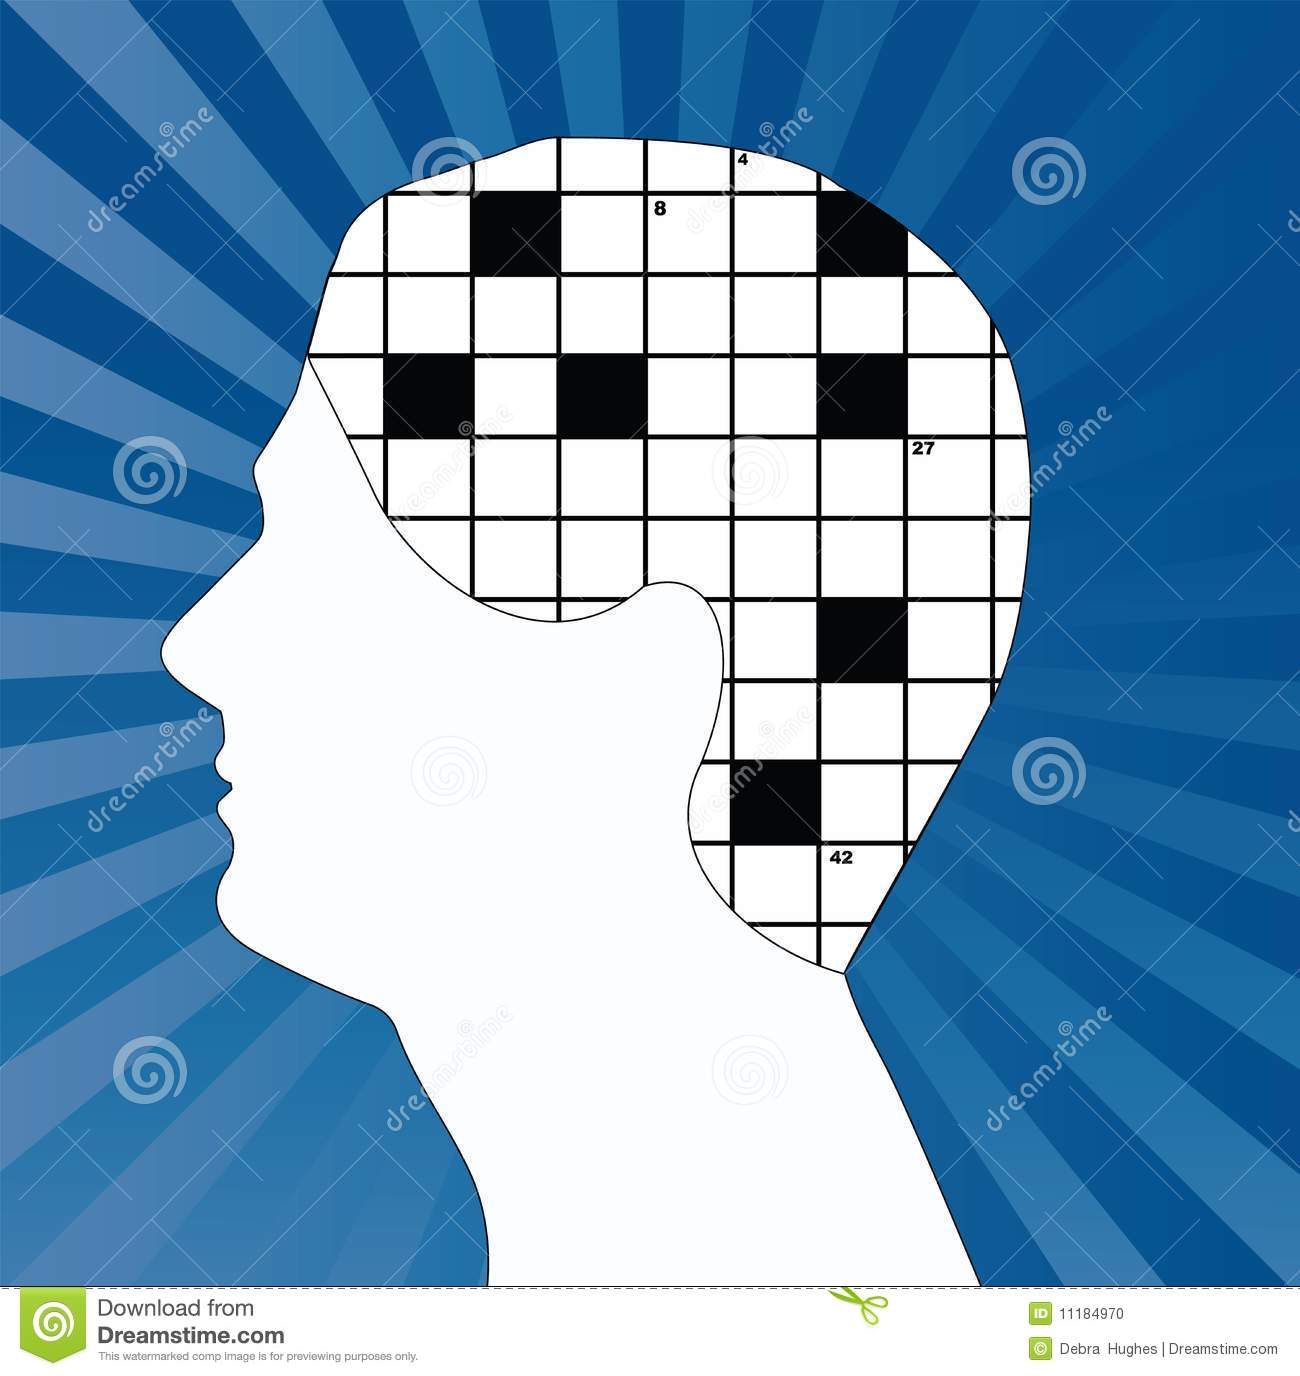 Crossword in brain collage stock vector illustration of geometric crossword brain stock photo ccuart Choice Image